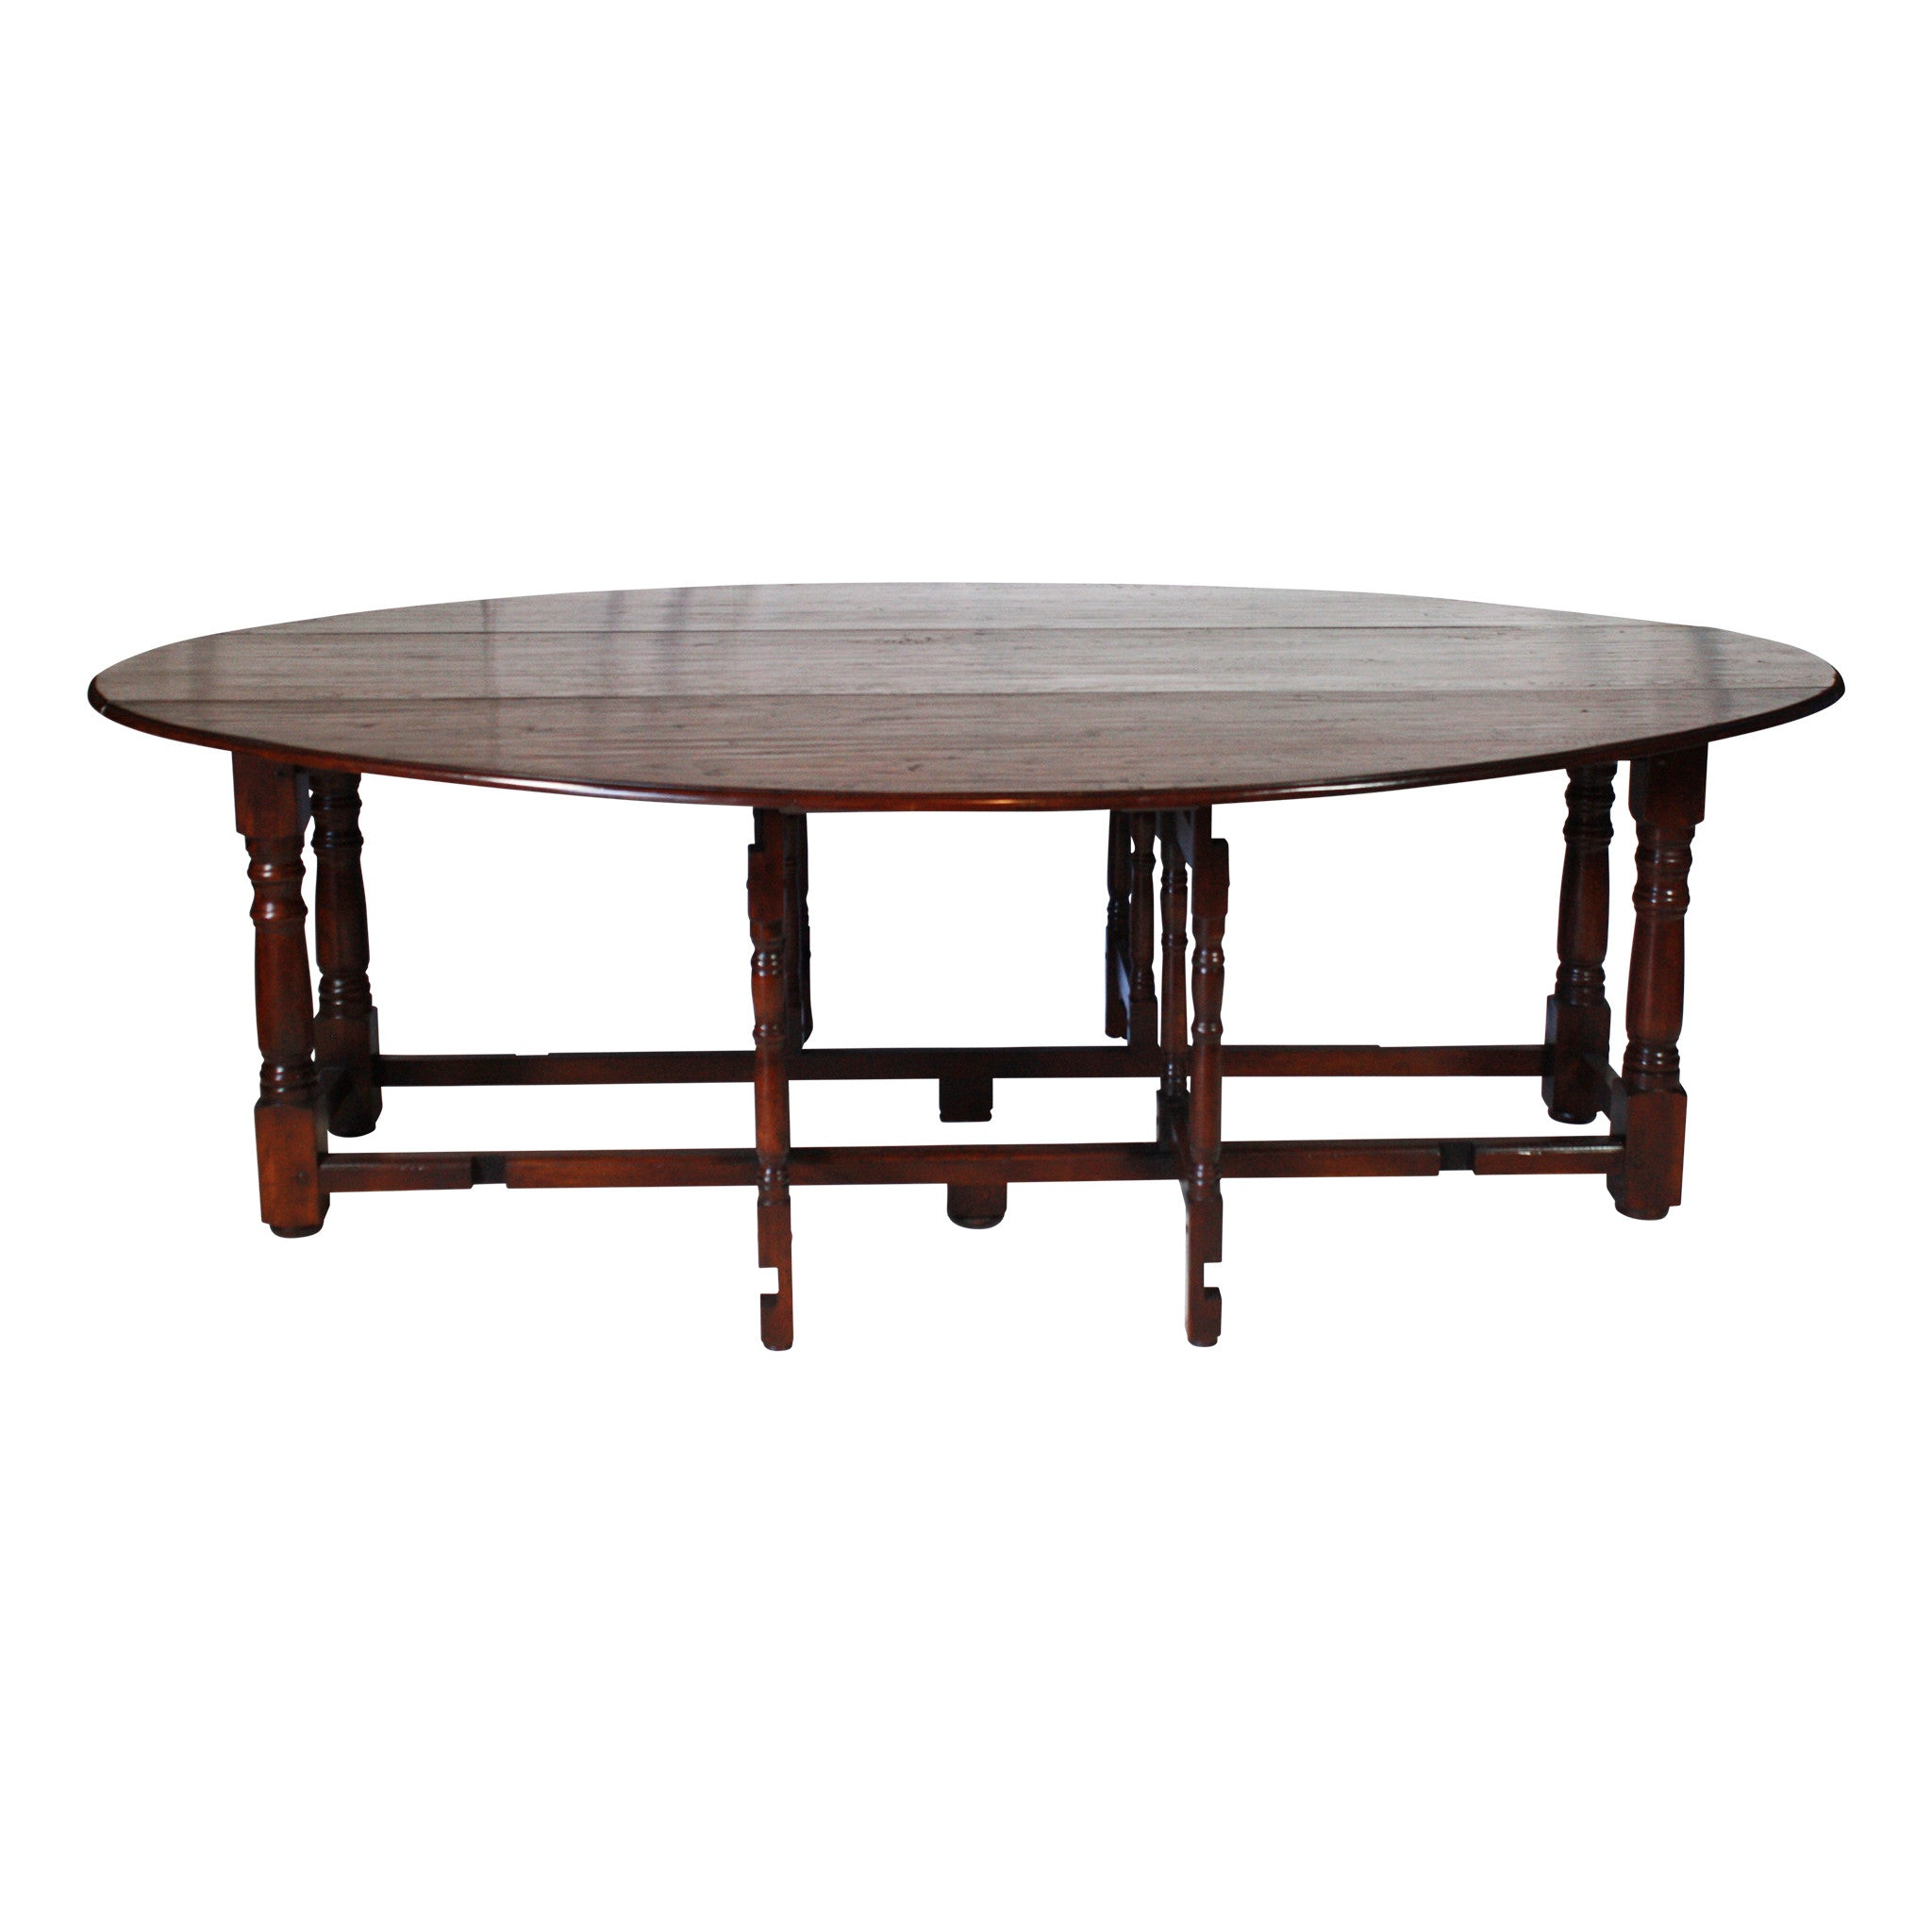 ski-country-antiques - Oak Gate Leg Table